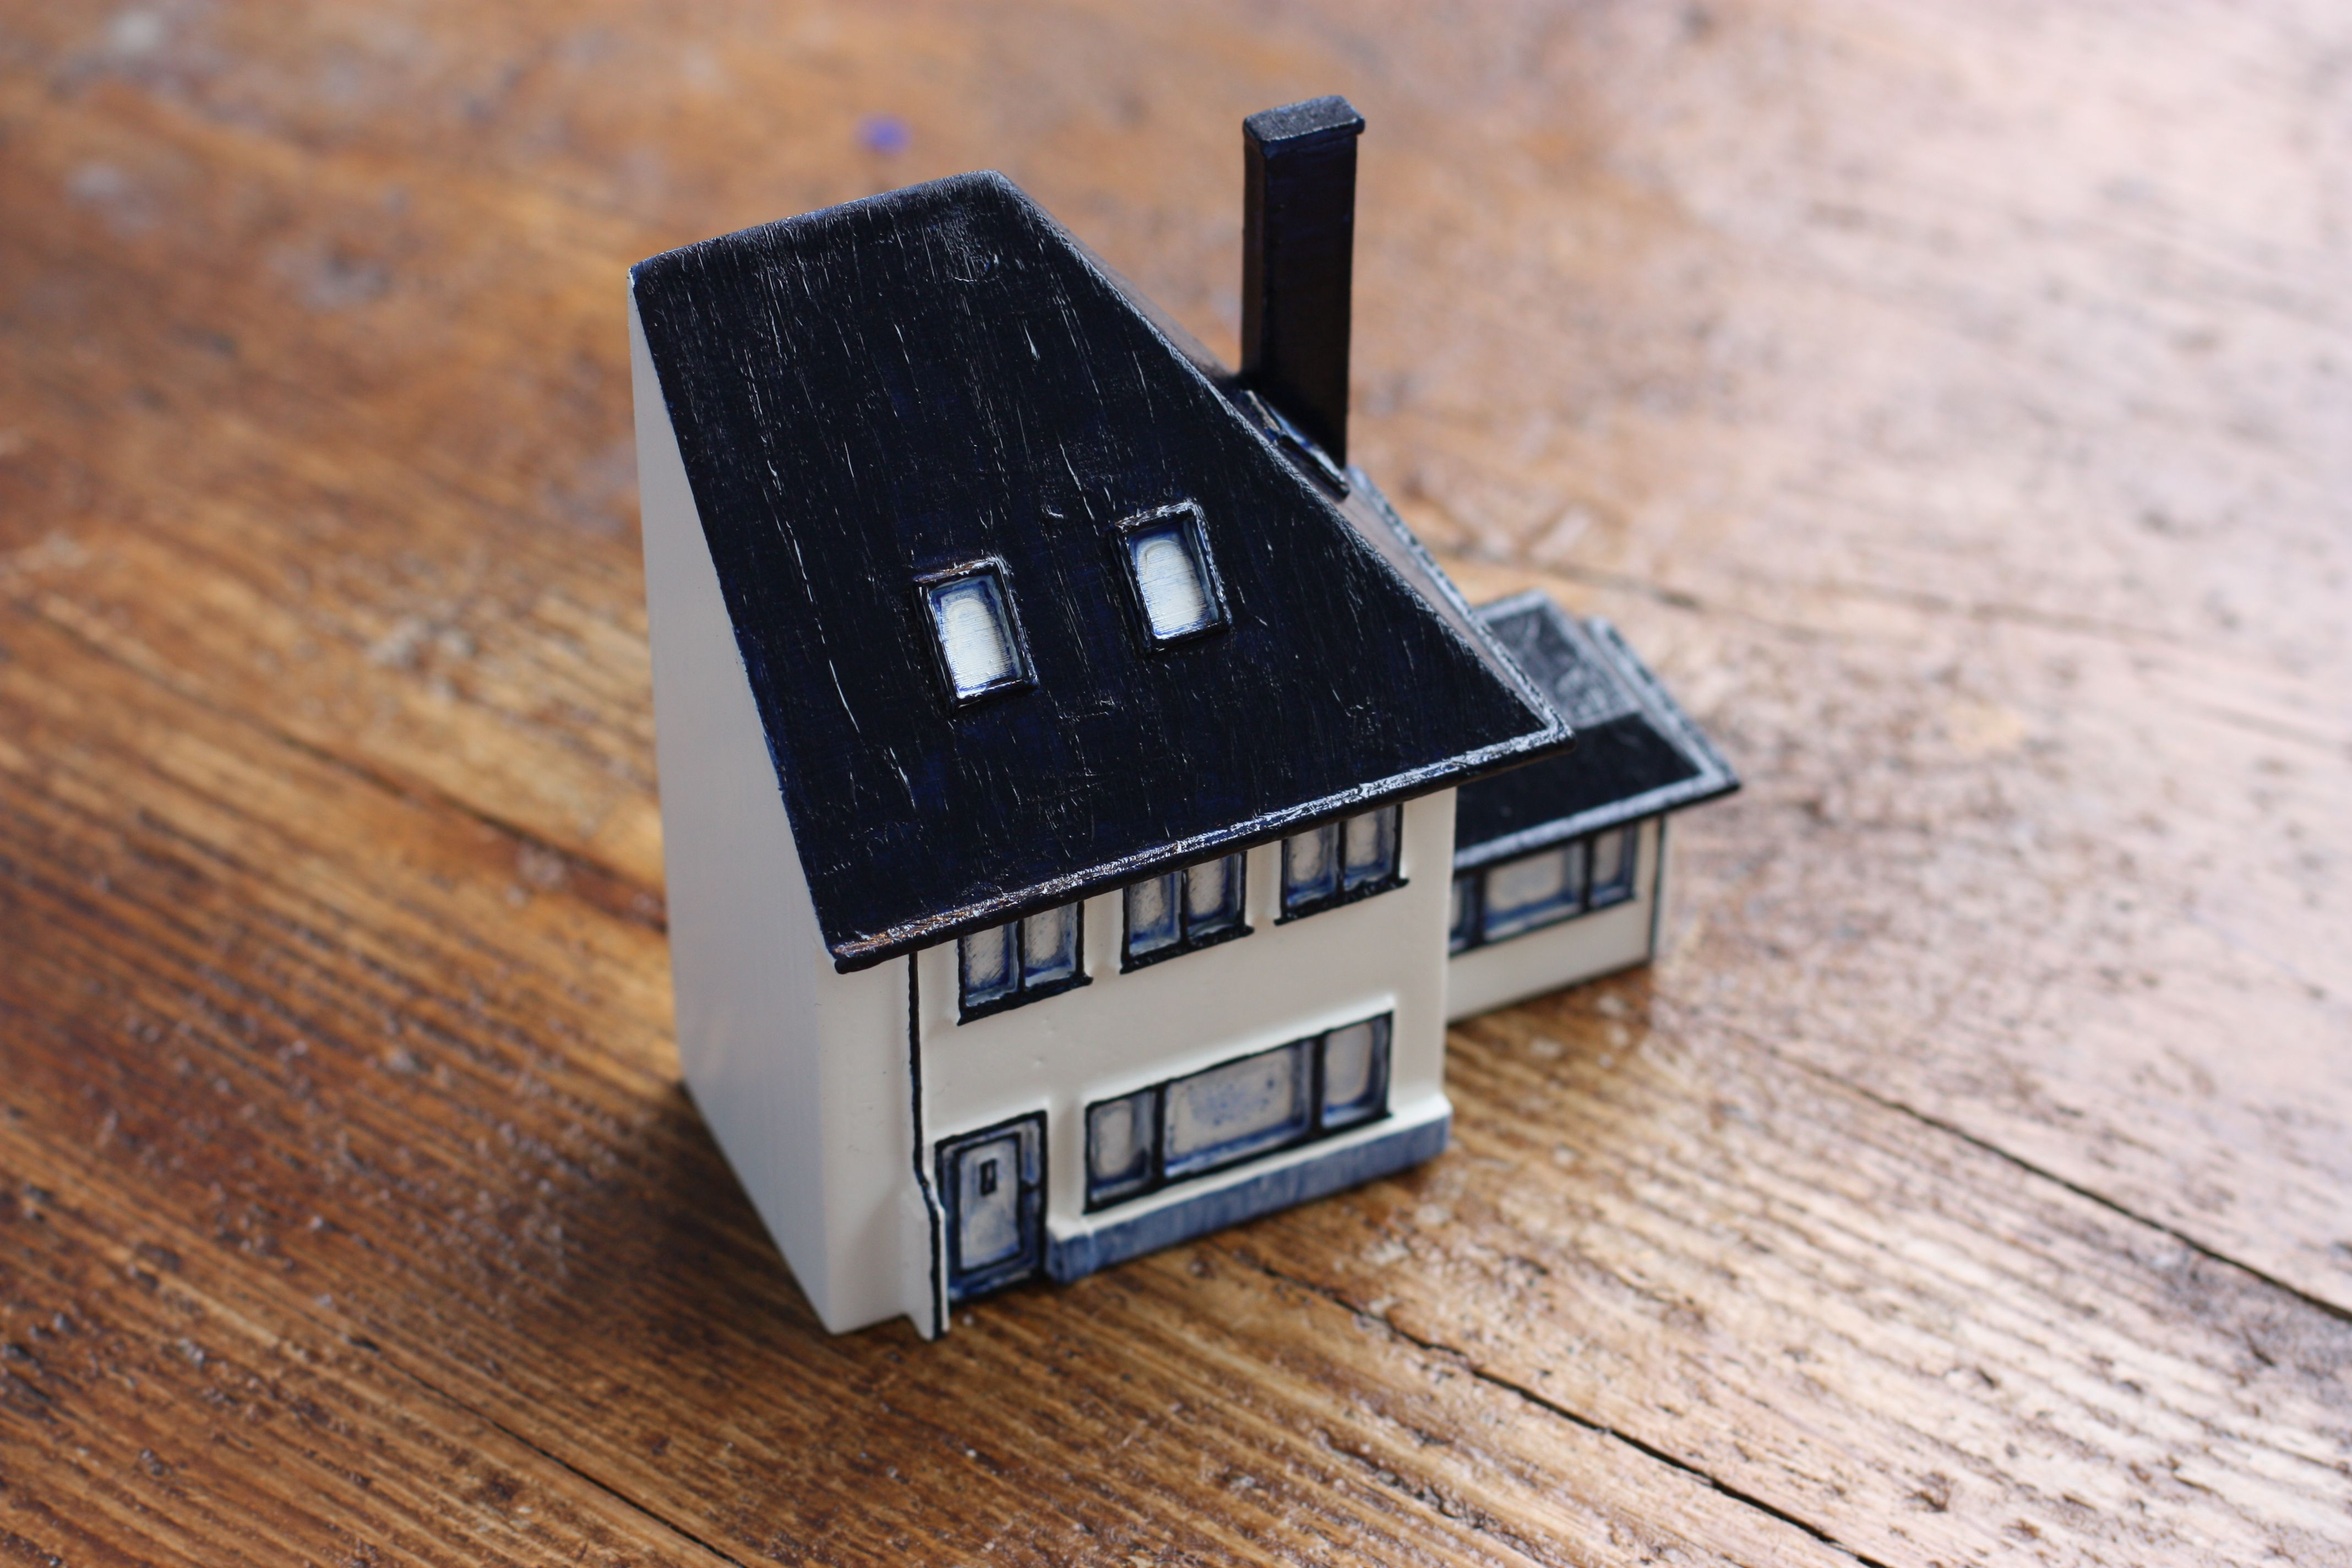 Hereu0027s One More Custom Made KLM House We Designed, Printed, And  Hand Painted For One Of Our Clients. Who Wants To See His Own House In A  Mini Version?